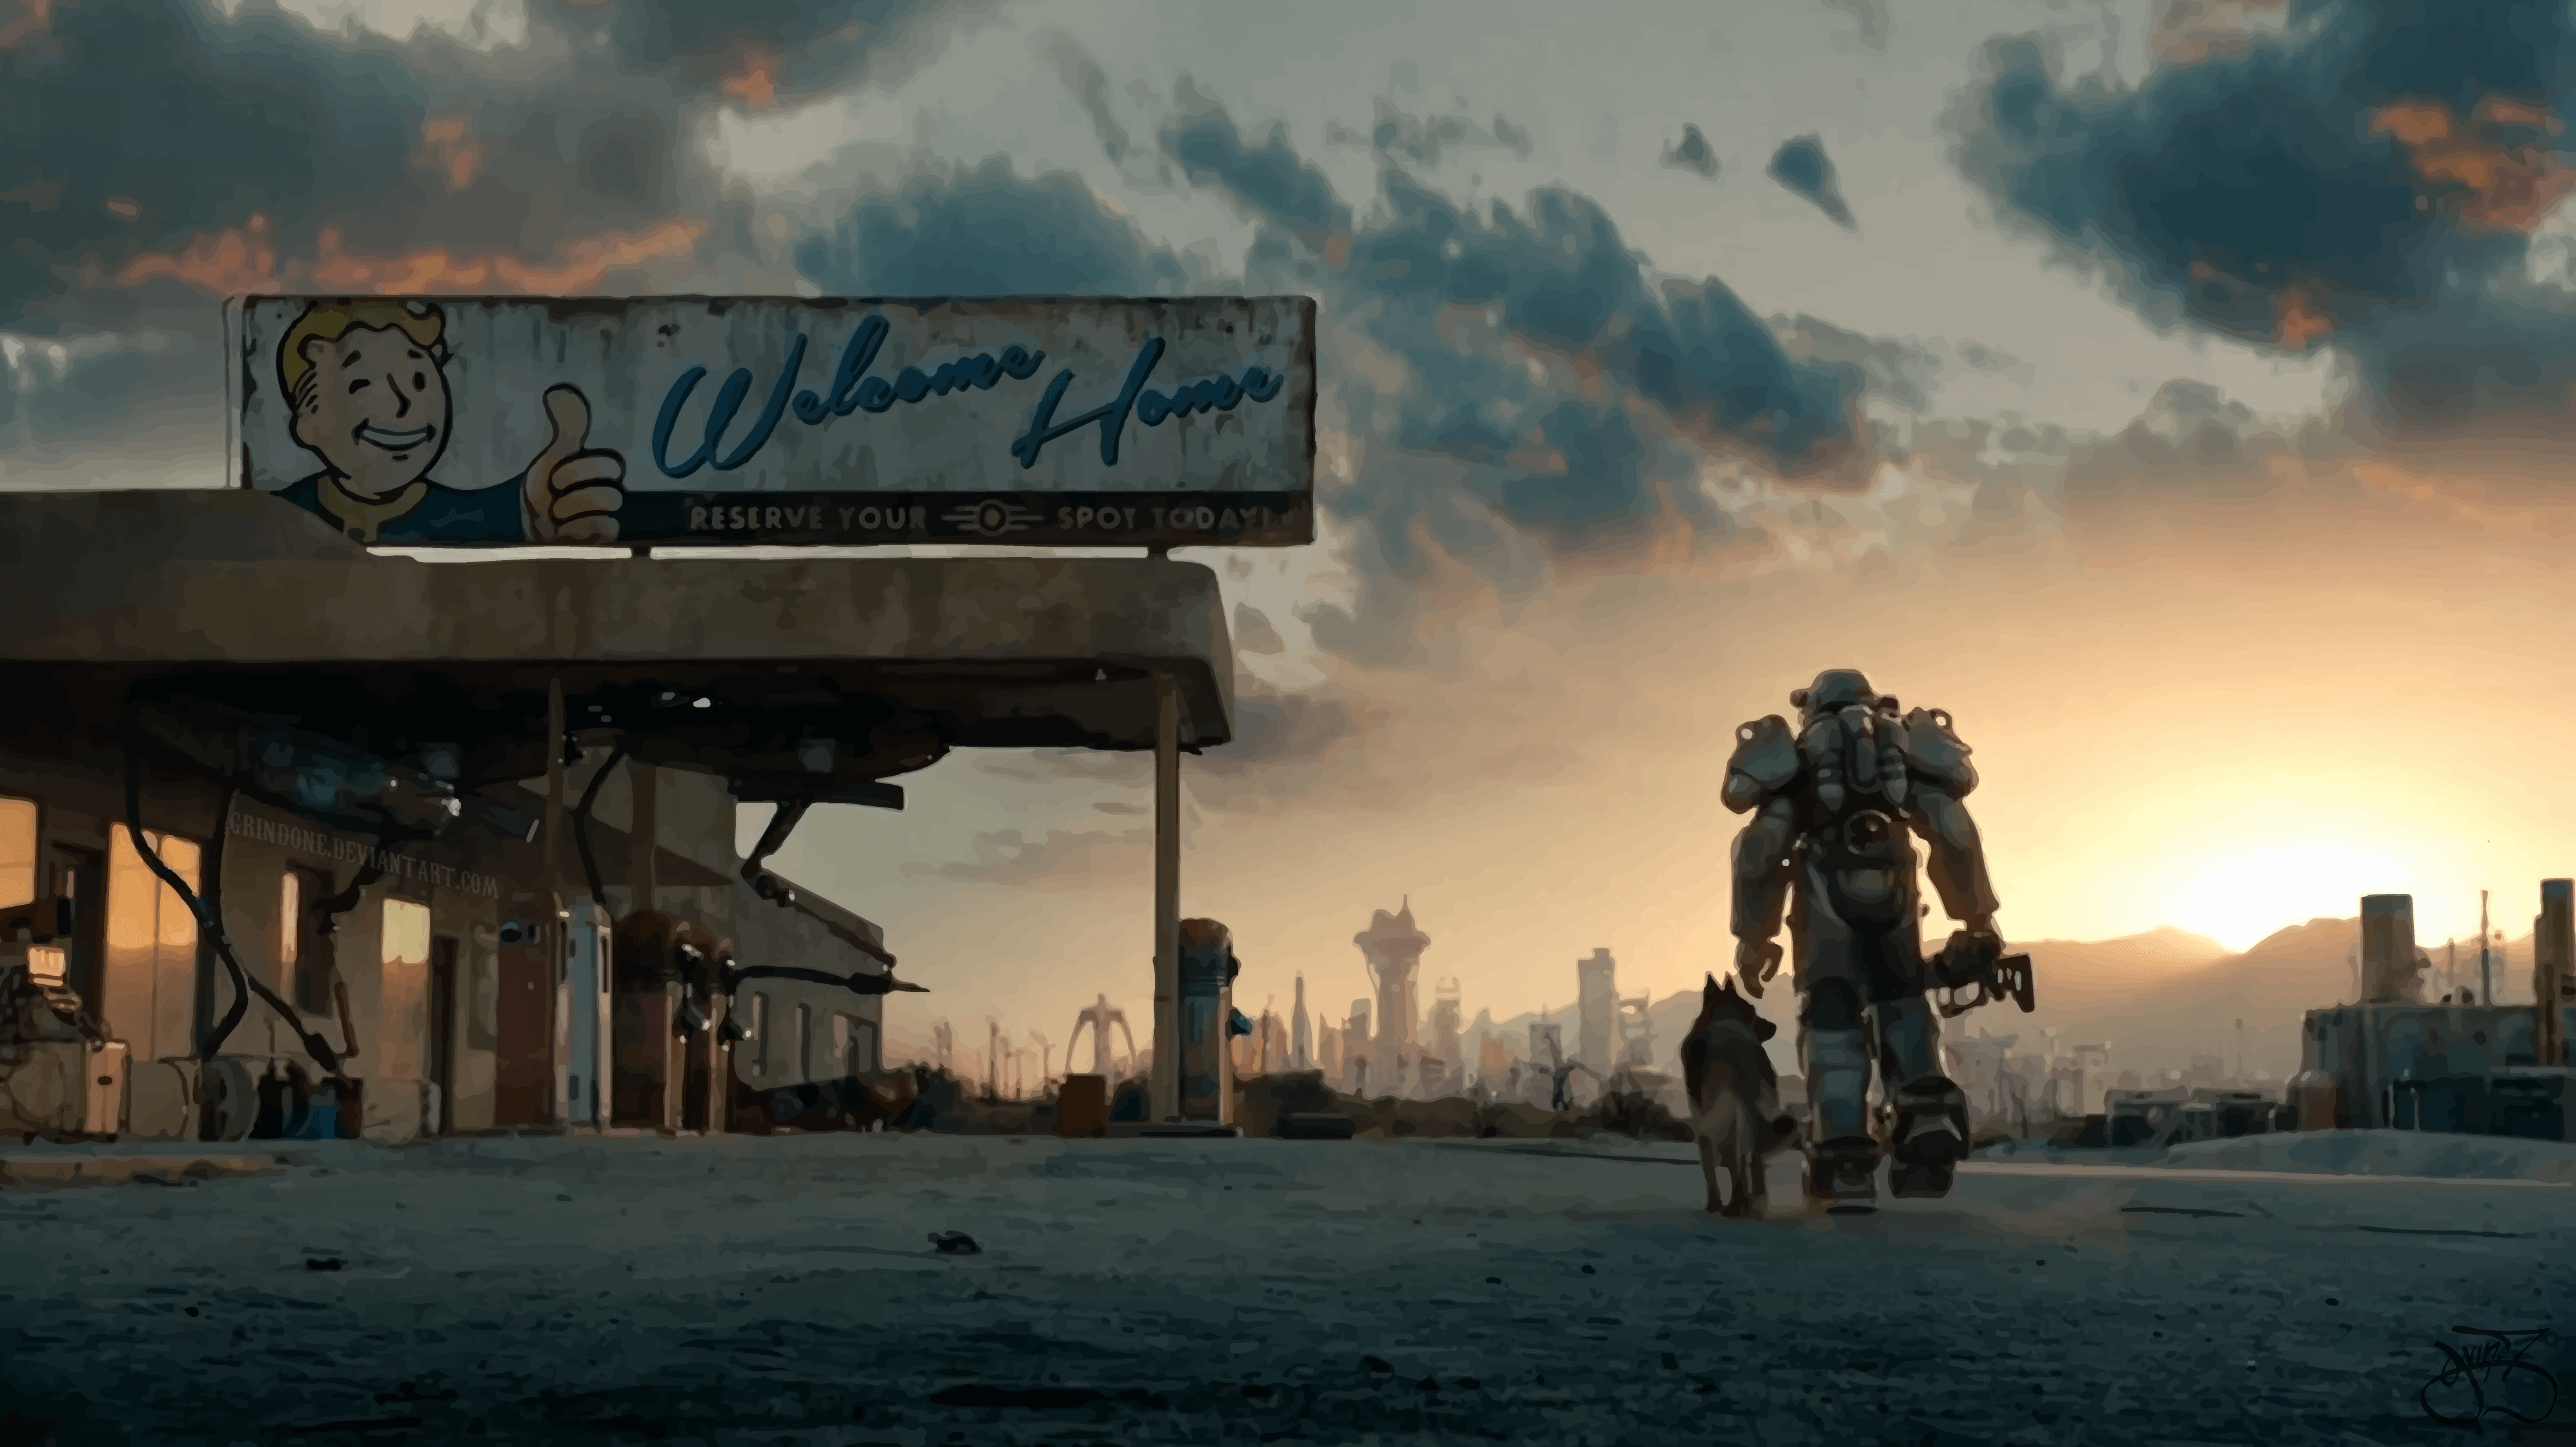 My Fallout wallpaper collection - Album on Imgur